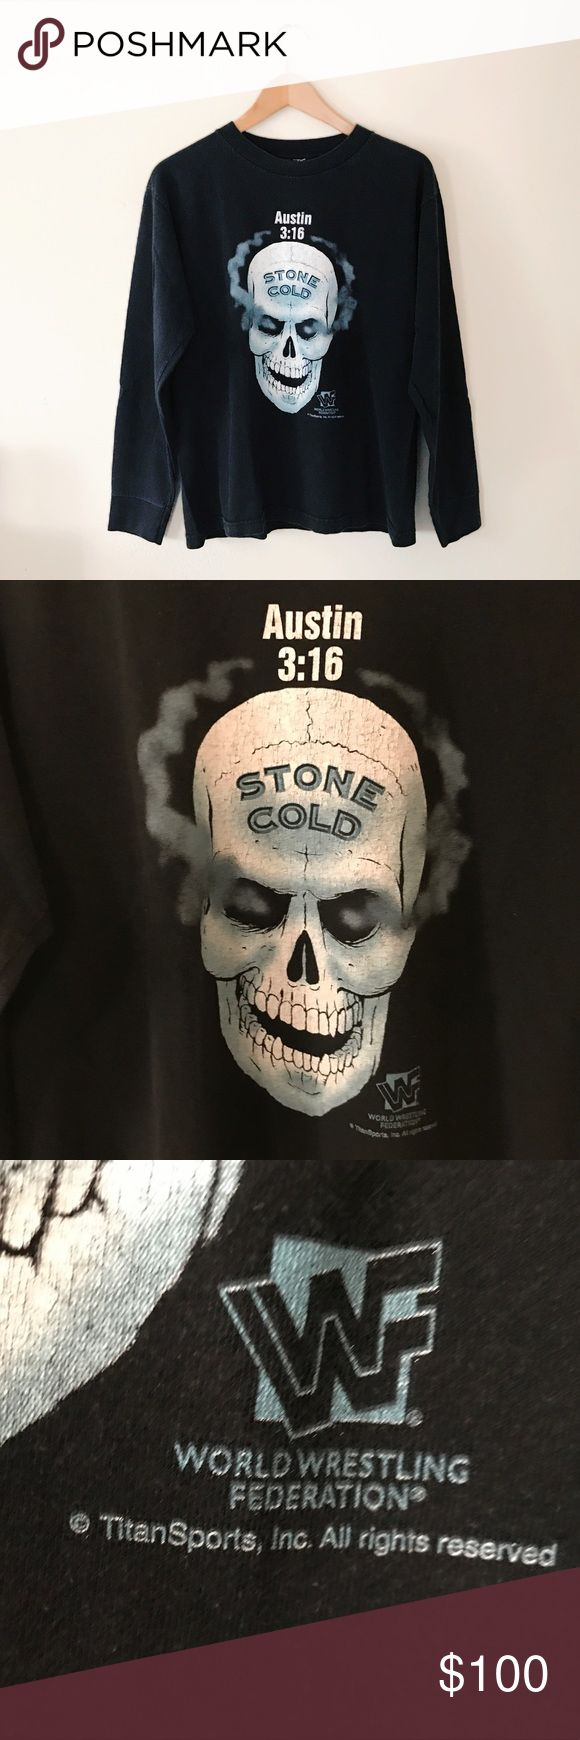 Rare WWF Stone Cold Long-sleeve Great vintage condition 90's WWF long sleeve! Size medium, it would fit small-medium. So sad to let this amazing rare shirt go but money for school is more important 😒 great shirt to even collect. As a wrestling fan it's really hard to come by long sleeve vintage wrestling shirts especially in this size and condition! WWE Tops Tees - Long Sleeve